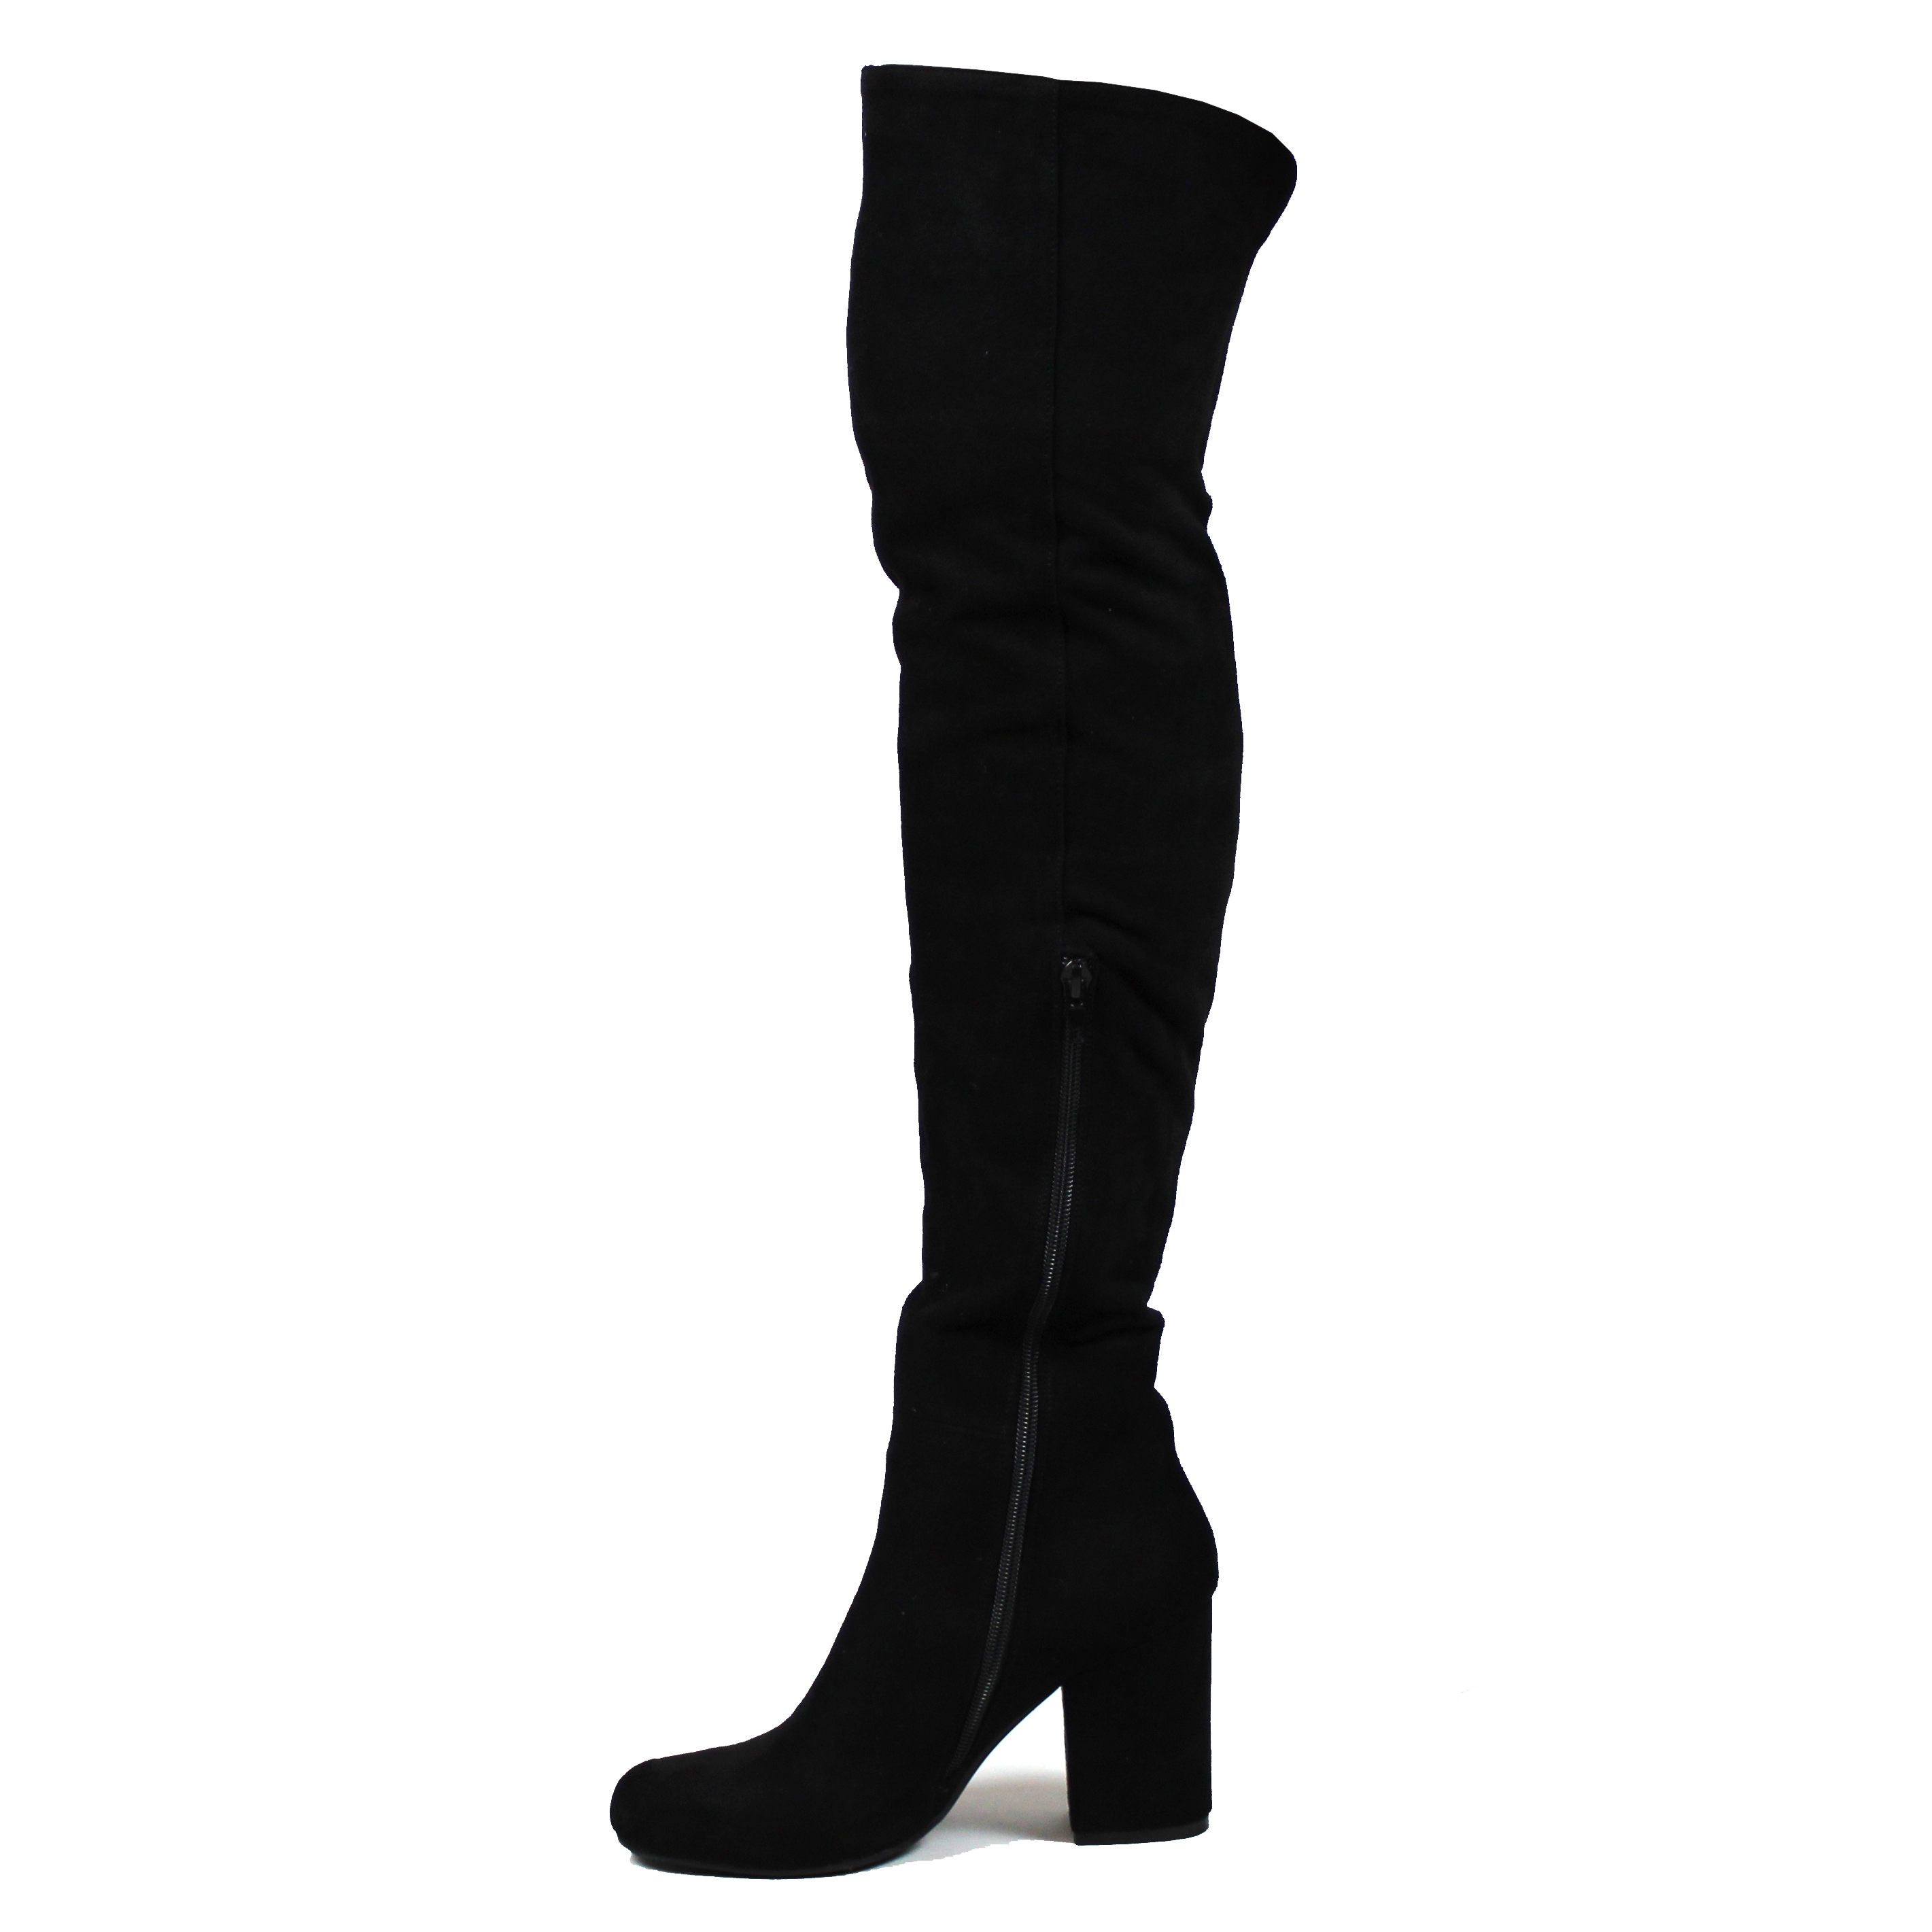 ca5ea560521 Womens Low Block Heel Thigh High Slouch Fashion Winter Over Knee ...